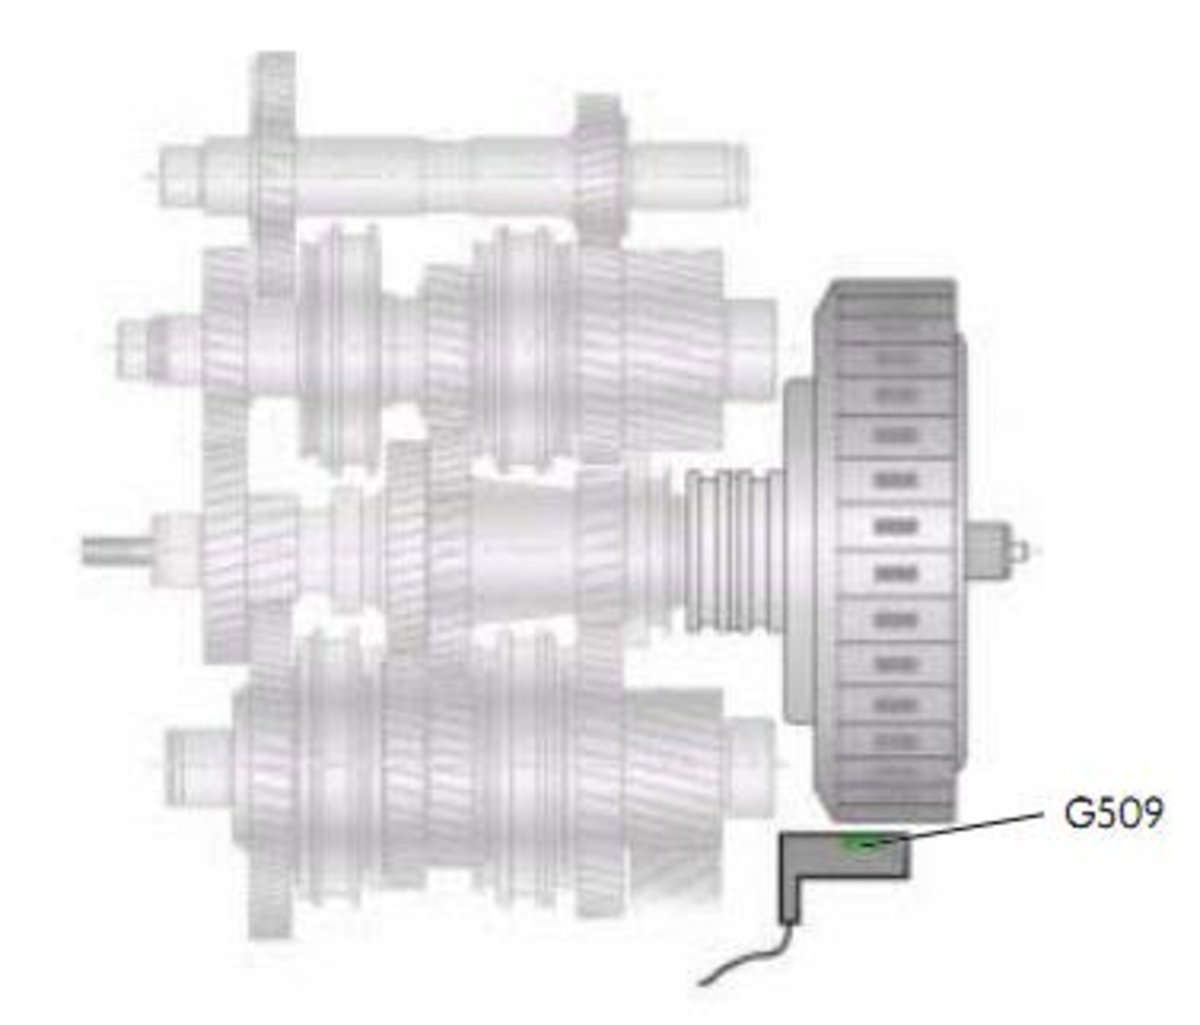 The Mechatronics of the Volkswagen Dual Clutch Transmission